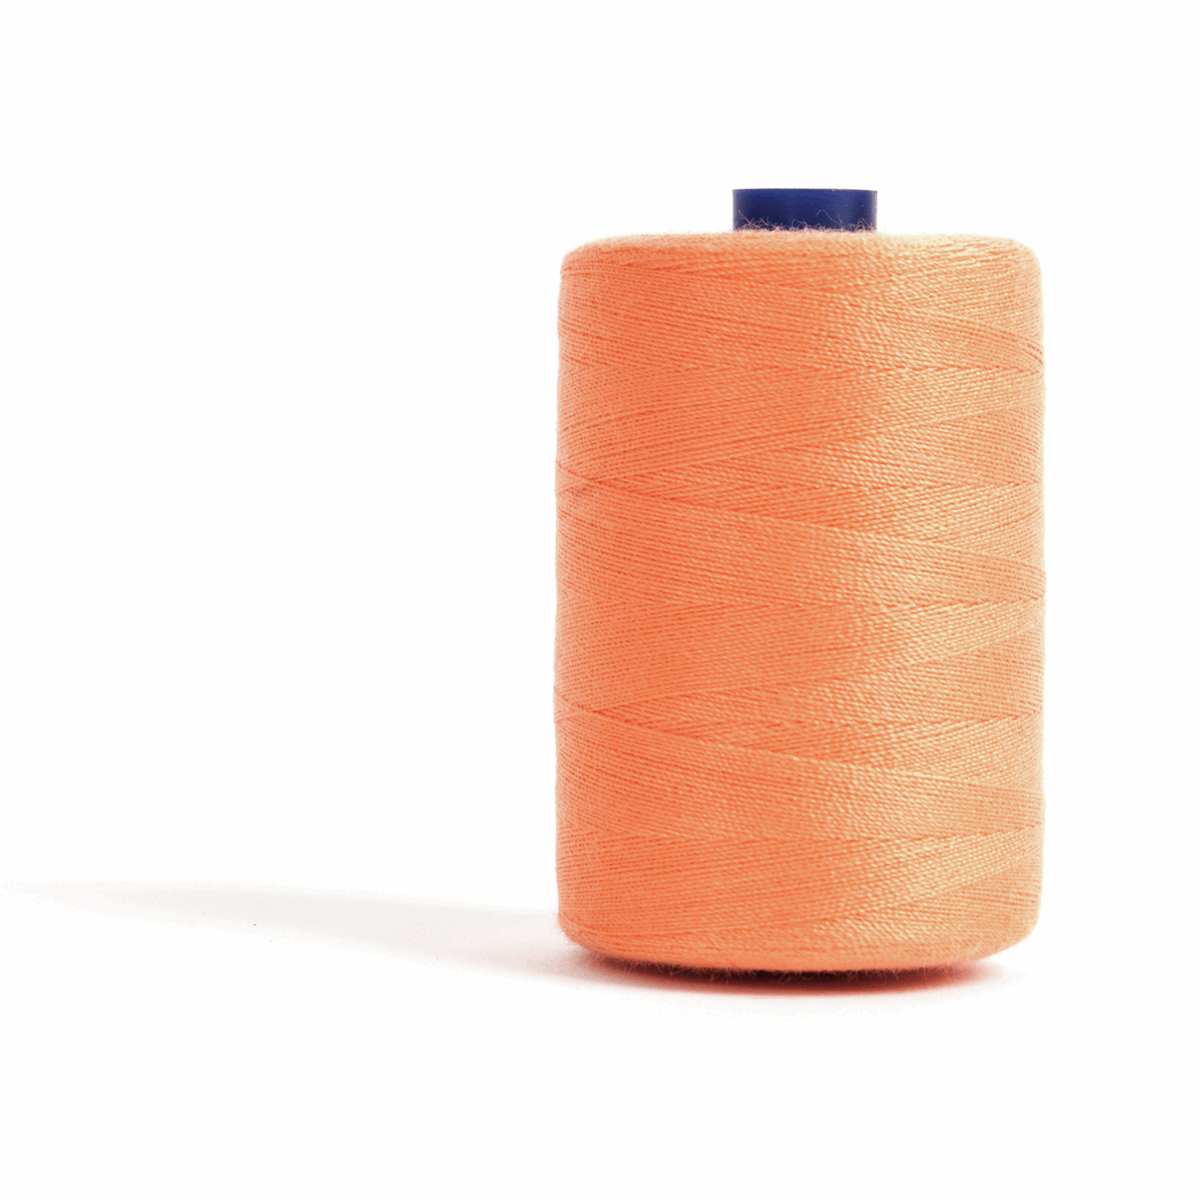 Picture of Sewing and Overlocking Thread: 5 x 1,000m: Apricot